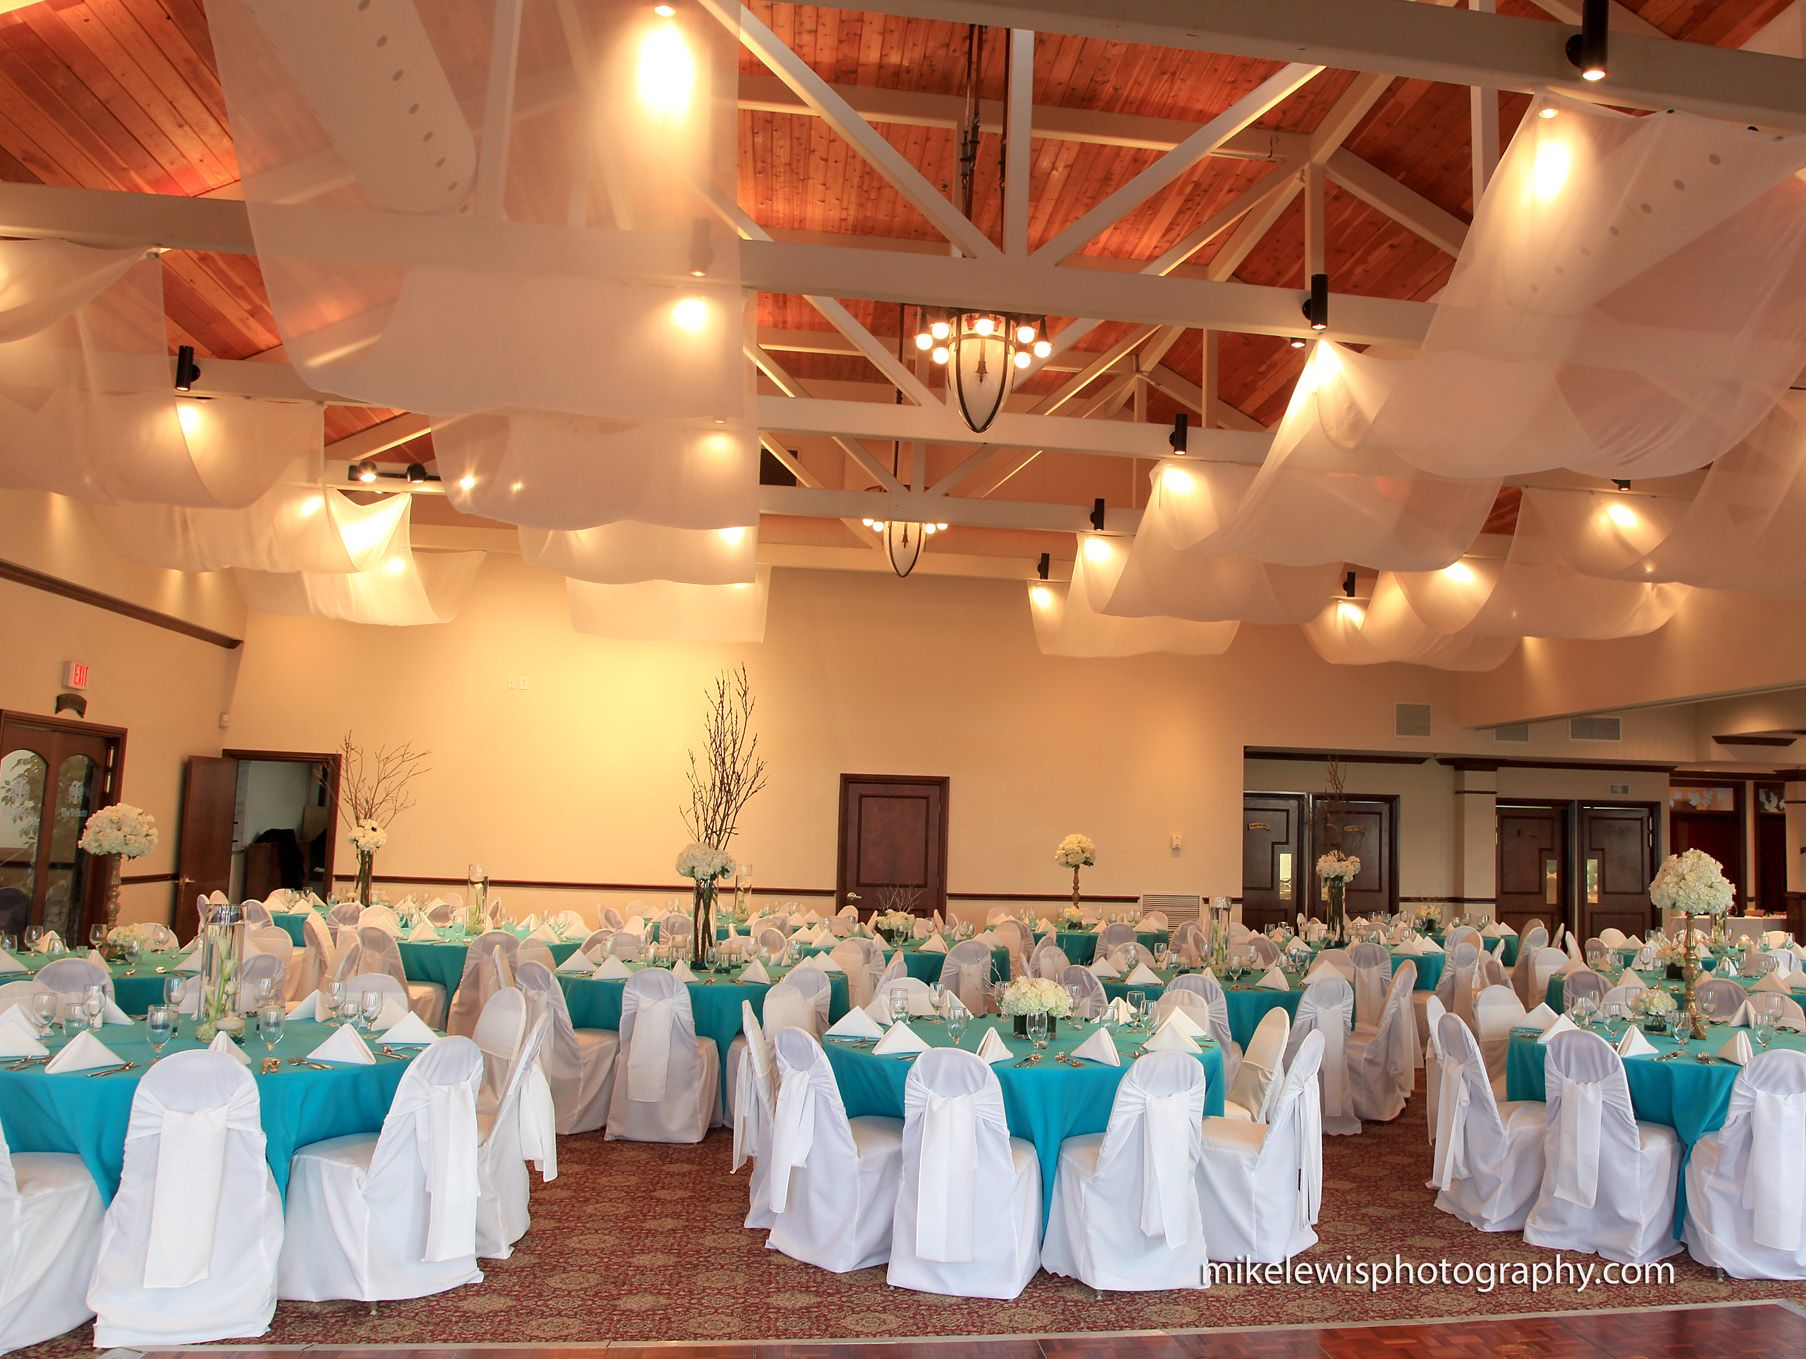 Ballroom Reception With Floor Length Turquoise Linens And White Naps, Chair